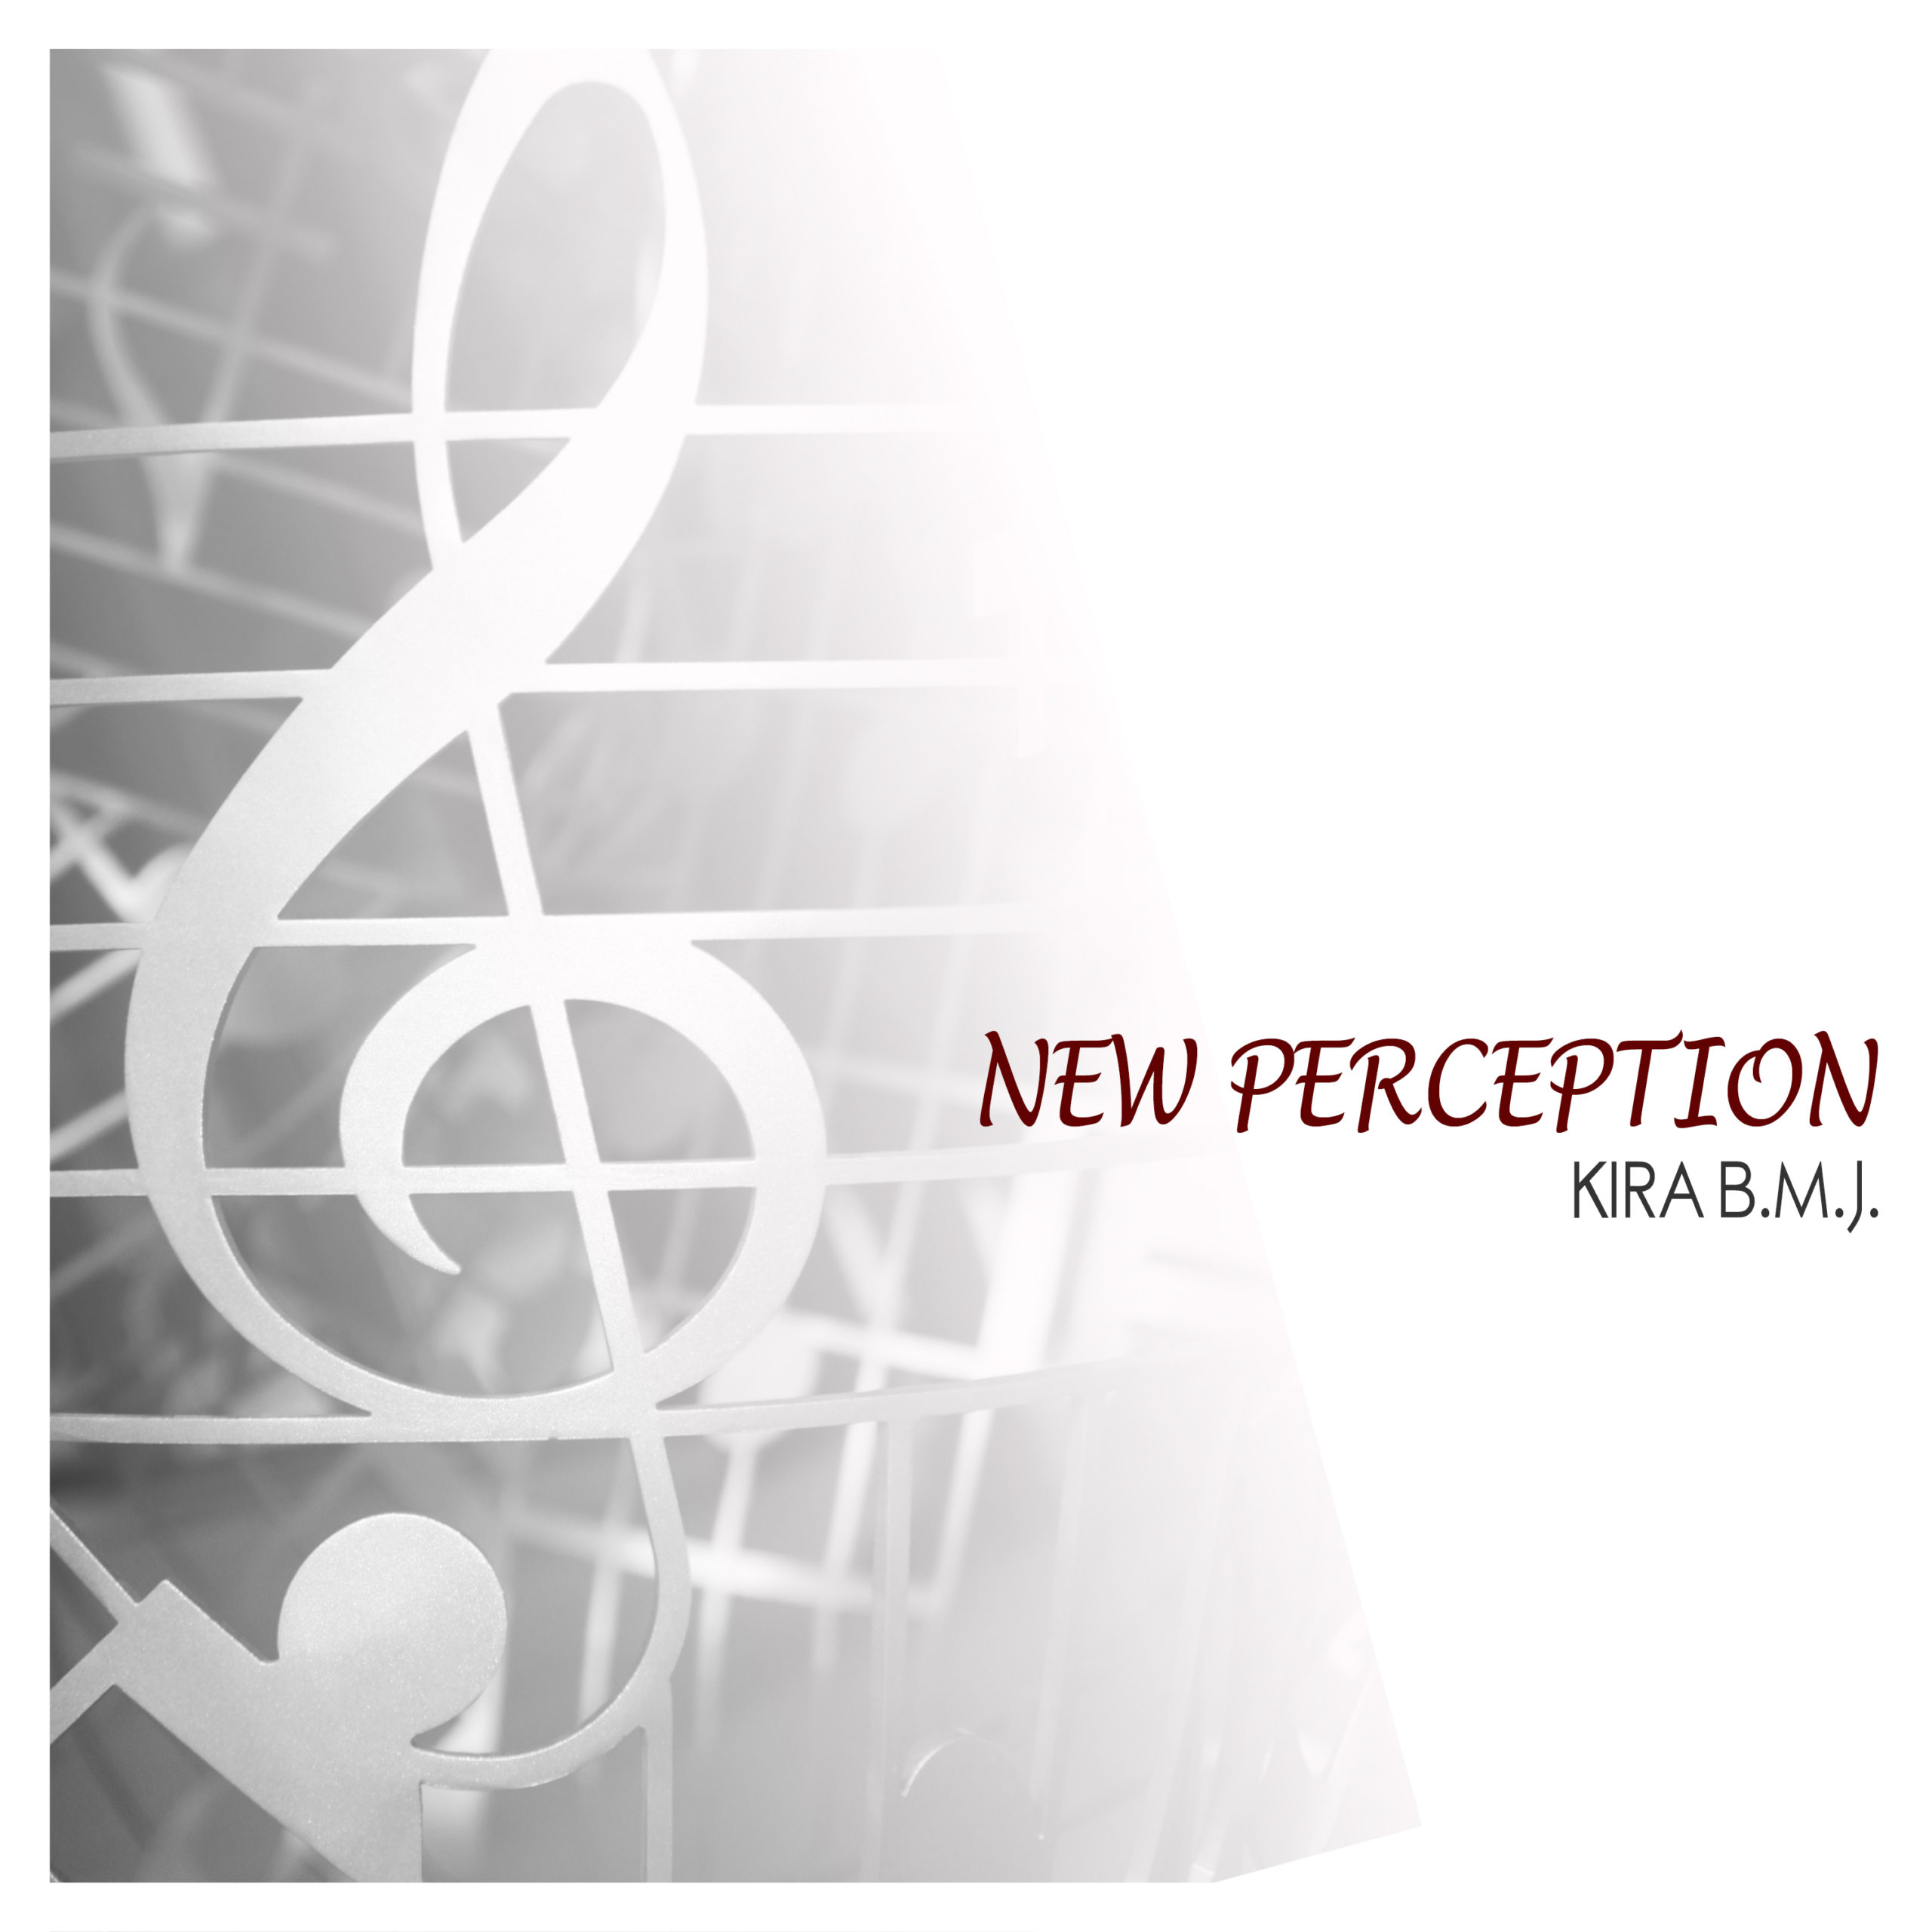 https://www.ultimate-house-records.com/wp-content/uploads/2021/05/Kira_BMJ-New_Perception_Cover-3000px_white-scaled.jpg